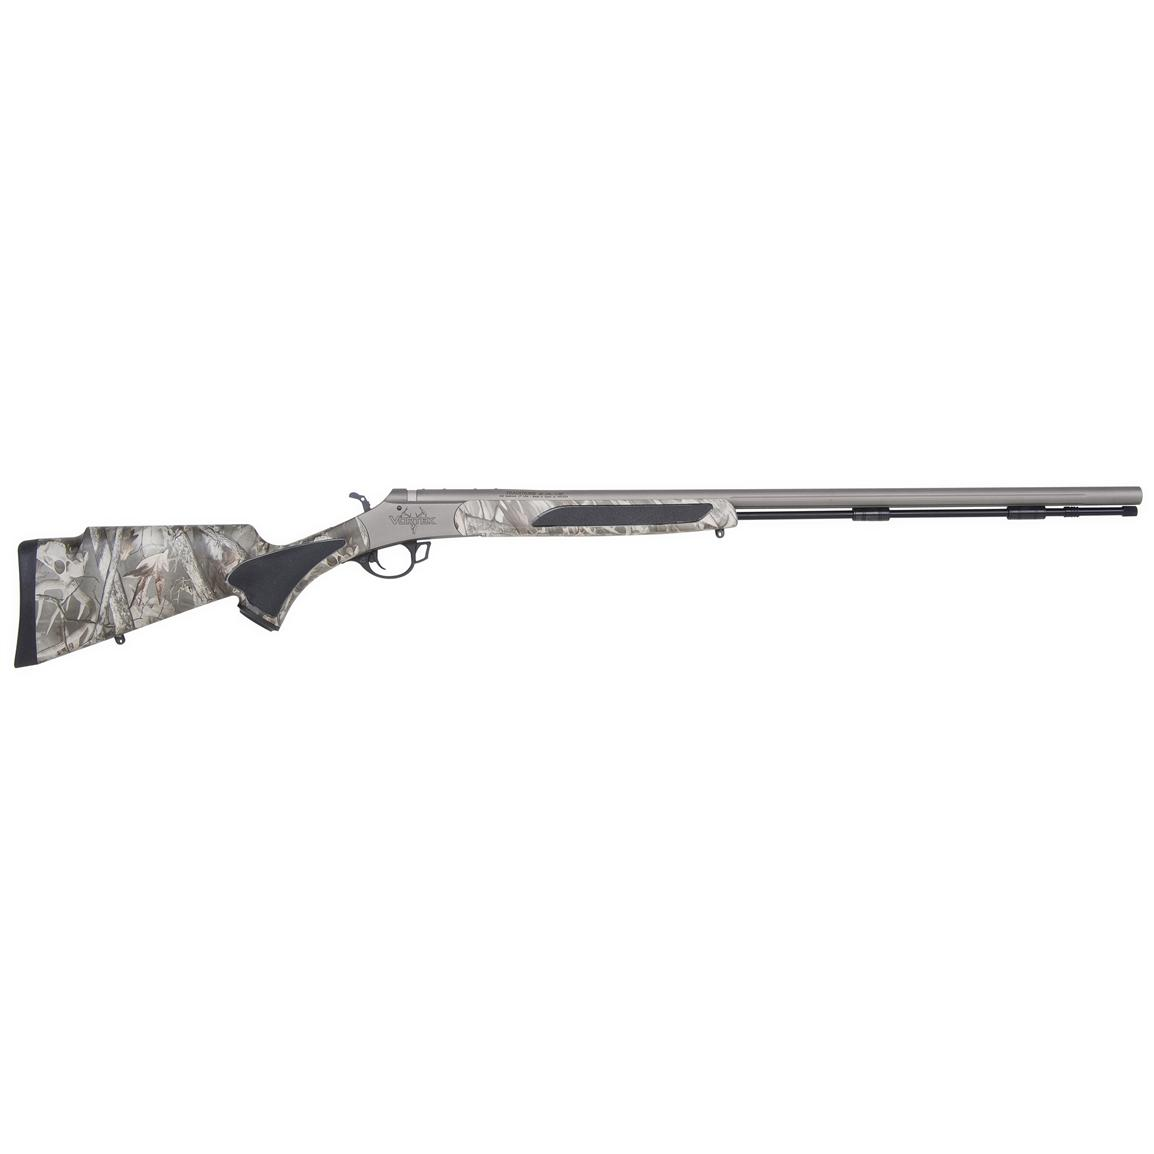 Traditions® Vortek™ Ultralight LDR .50 cal. Black Powder Rifle with Scope Package